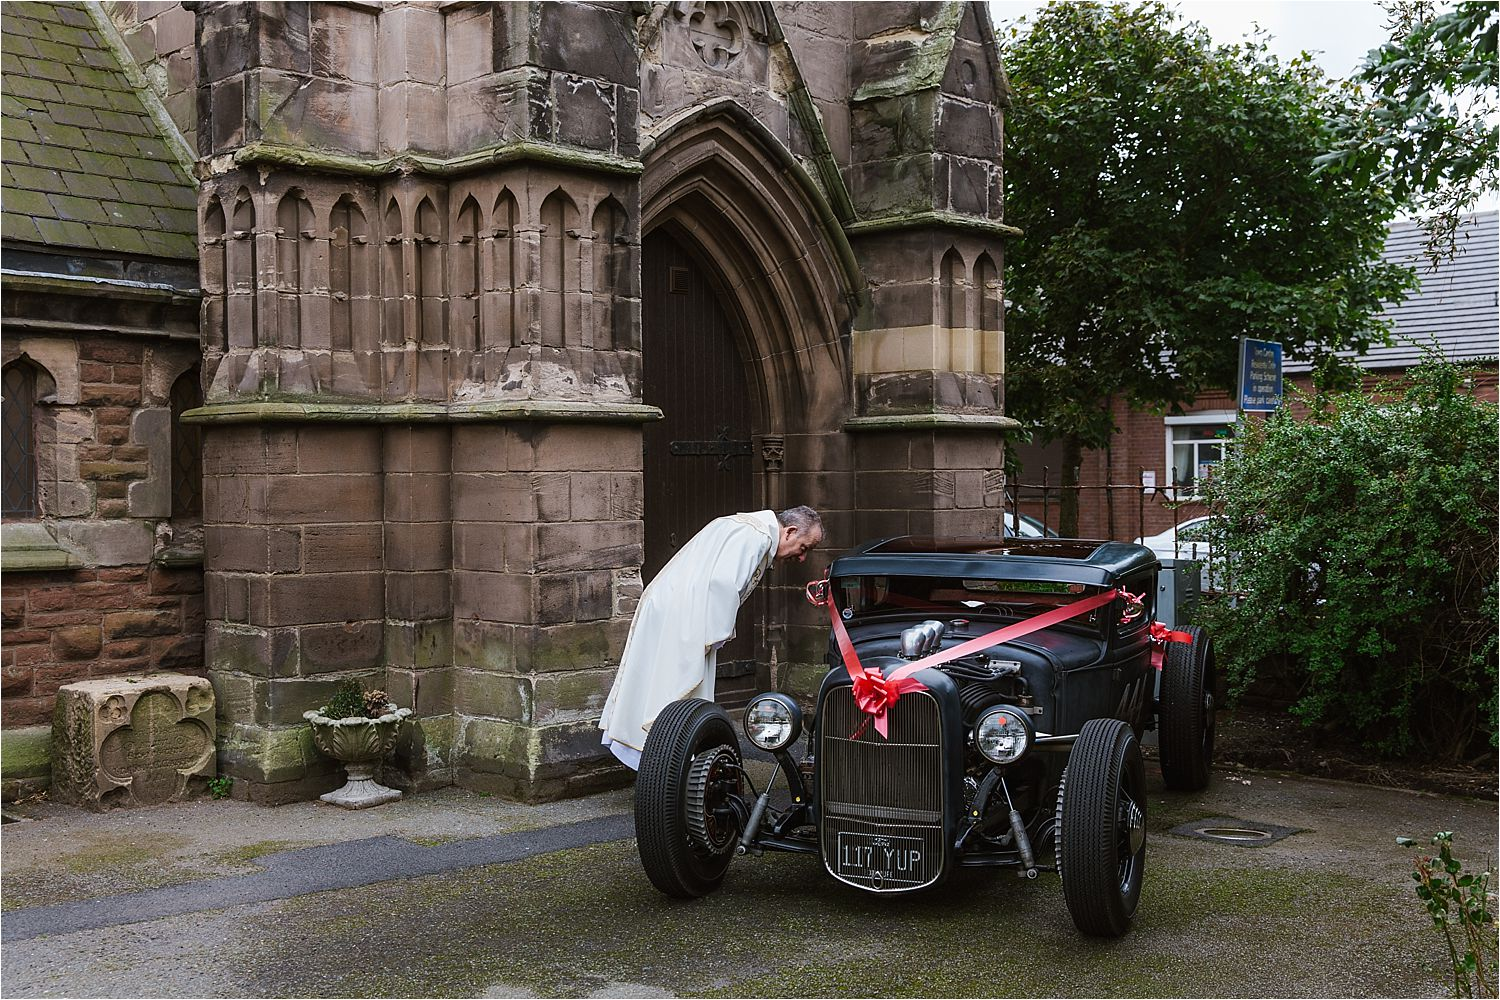 Vicar inspects the vintage roadster car outside church prior to wedding ceremony